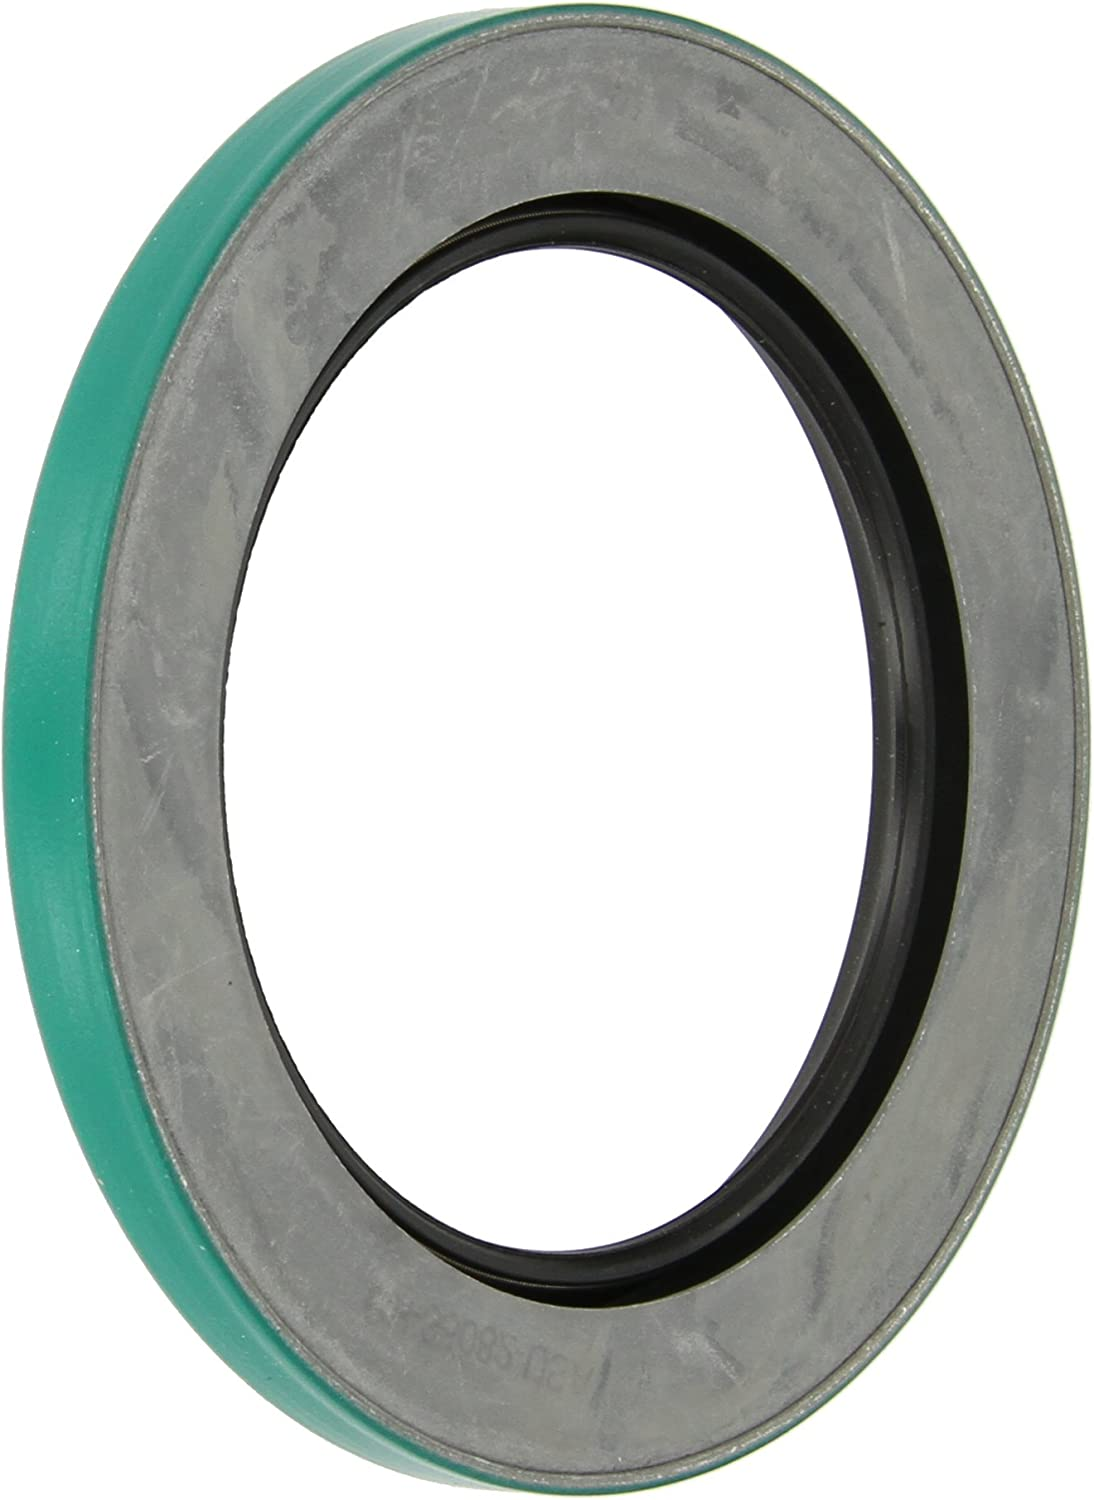 SKF 35082 LDS Small High quality High quality new new Bore Seal CRWH1 Inch Lip R Code Style